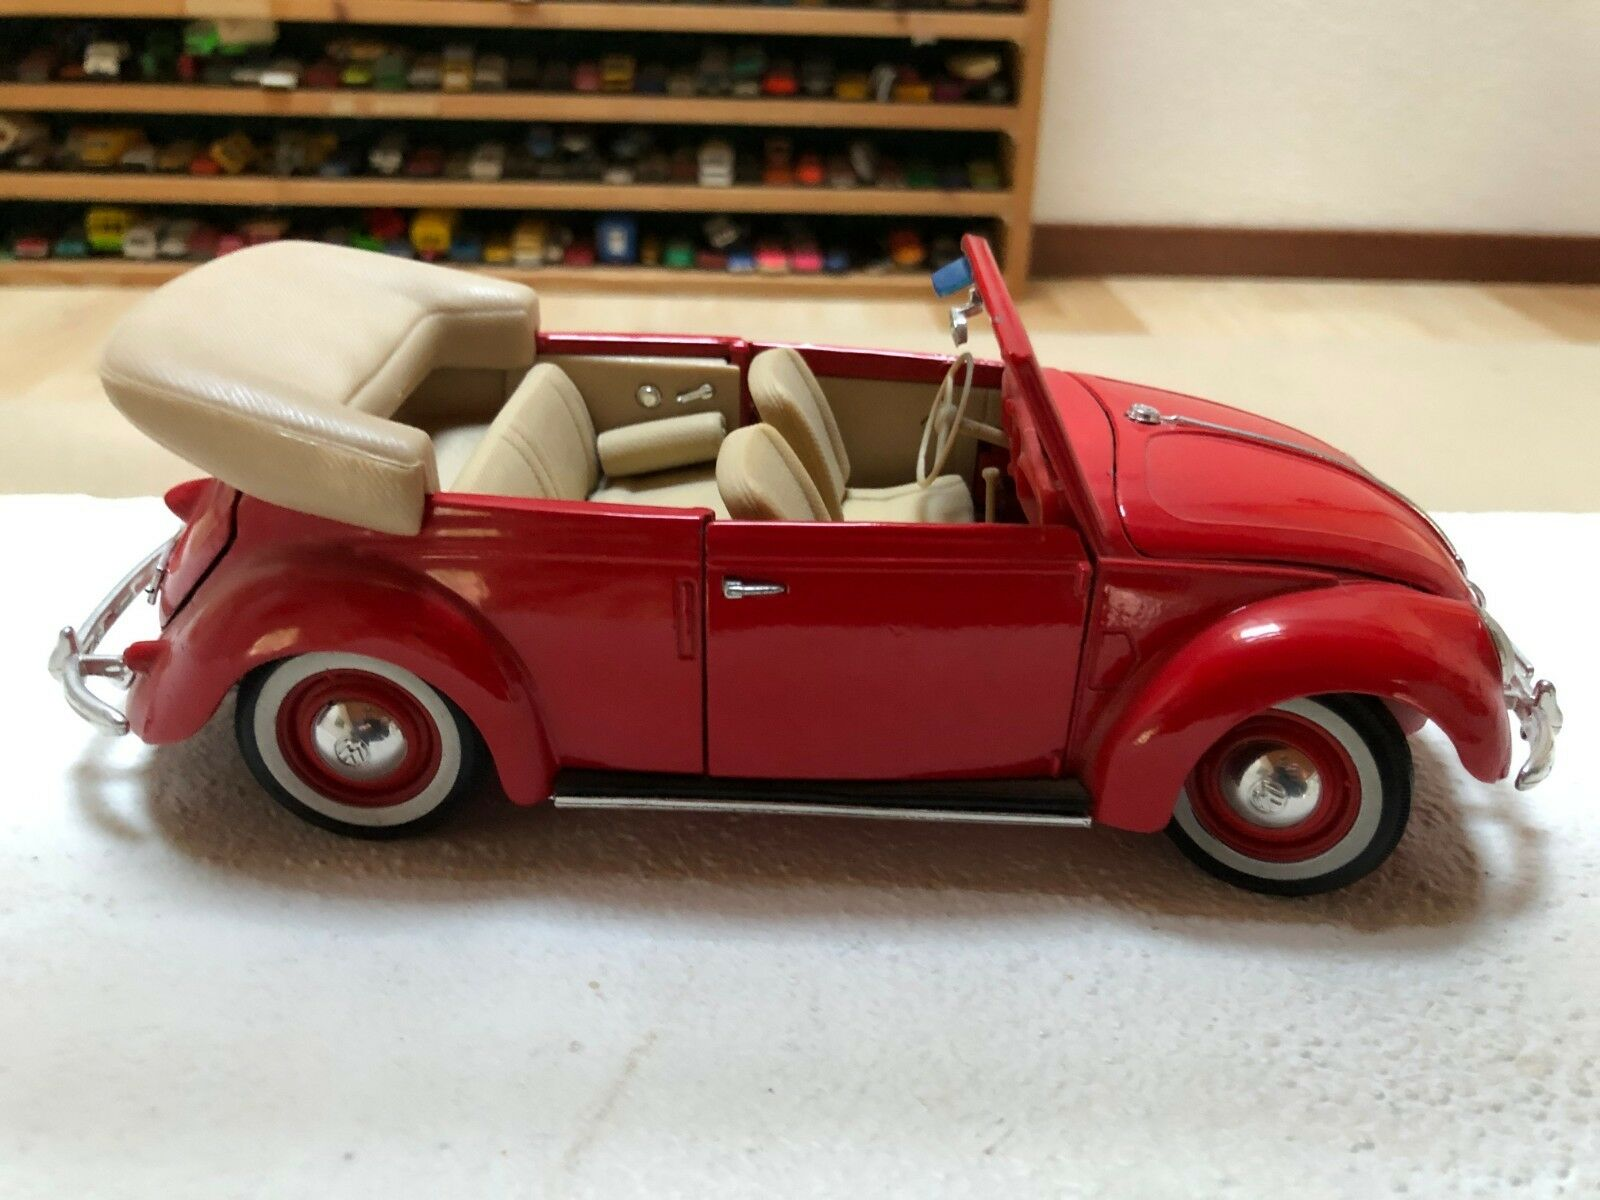 Maisto VW Volkswagen Beetle 1951 Scale 1 18 CABRIOLET RED